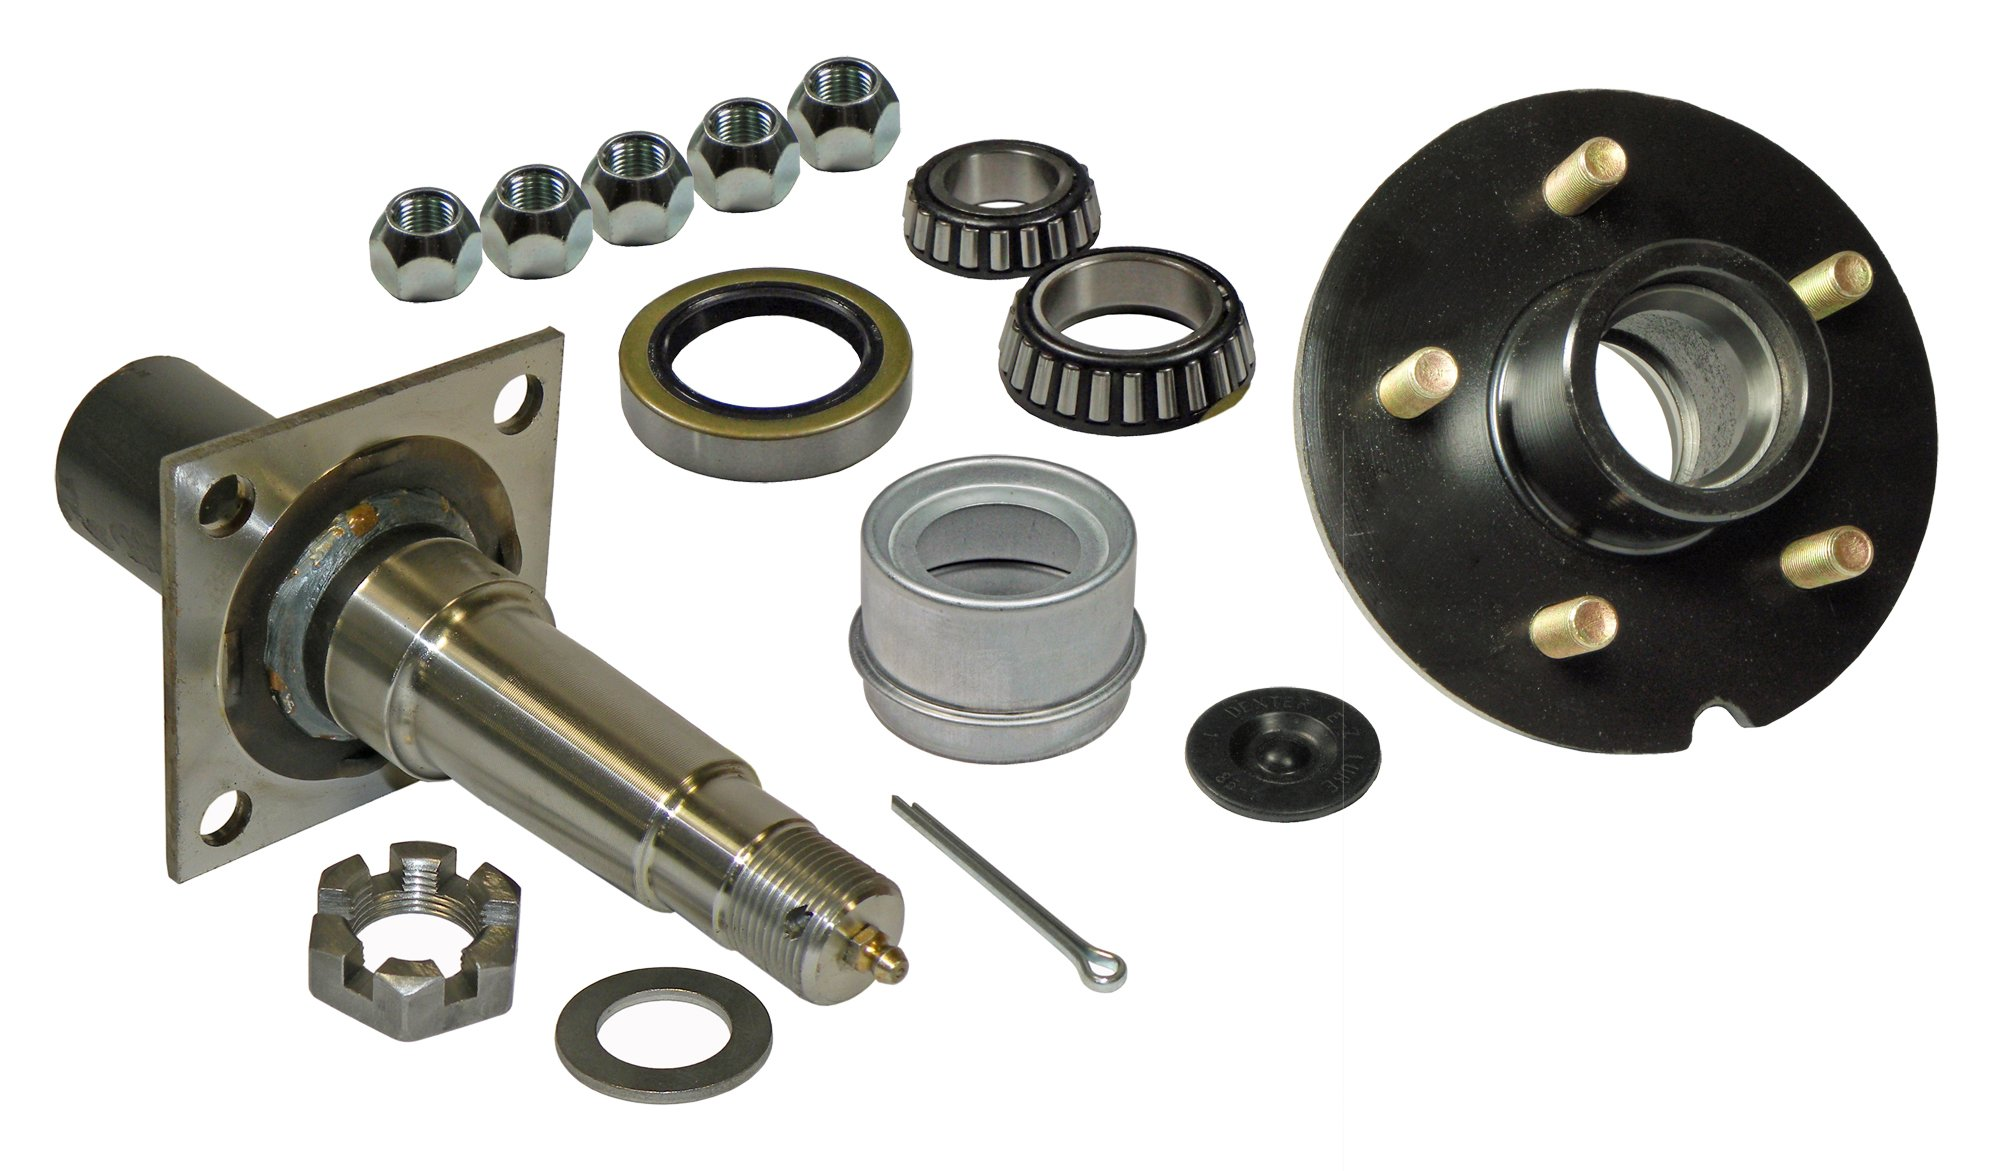 Rigid Hitch Single - 5-Bolt on 4-1/2 Inch Hub Assembly (RD-3500545F) Includes (1) Flanged, 1-3/8 Inch to 1-1/16 Inch Tapered Spindle & Bearings by Rigid Hitch